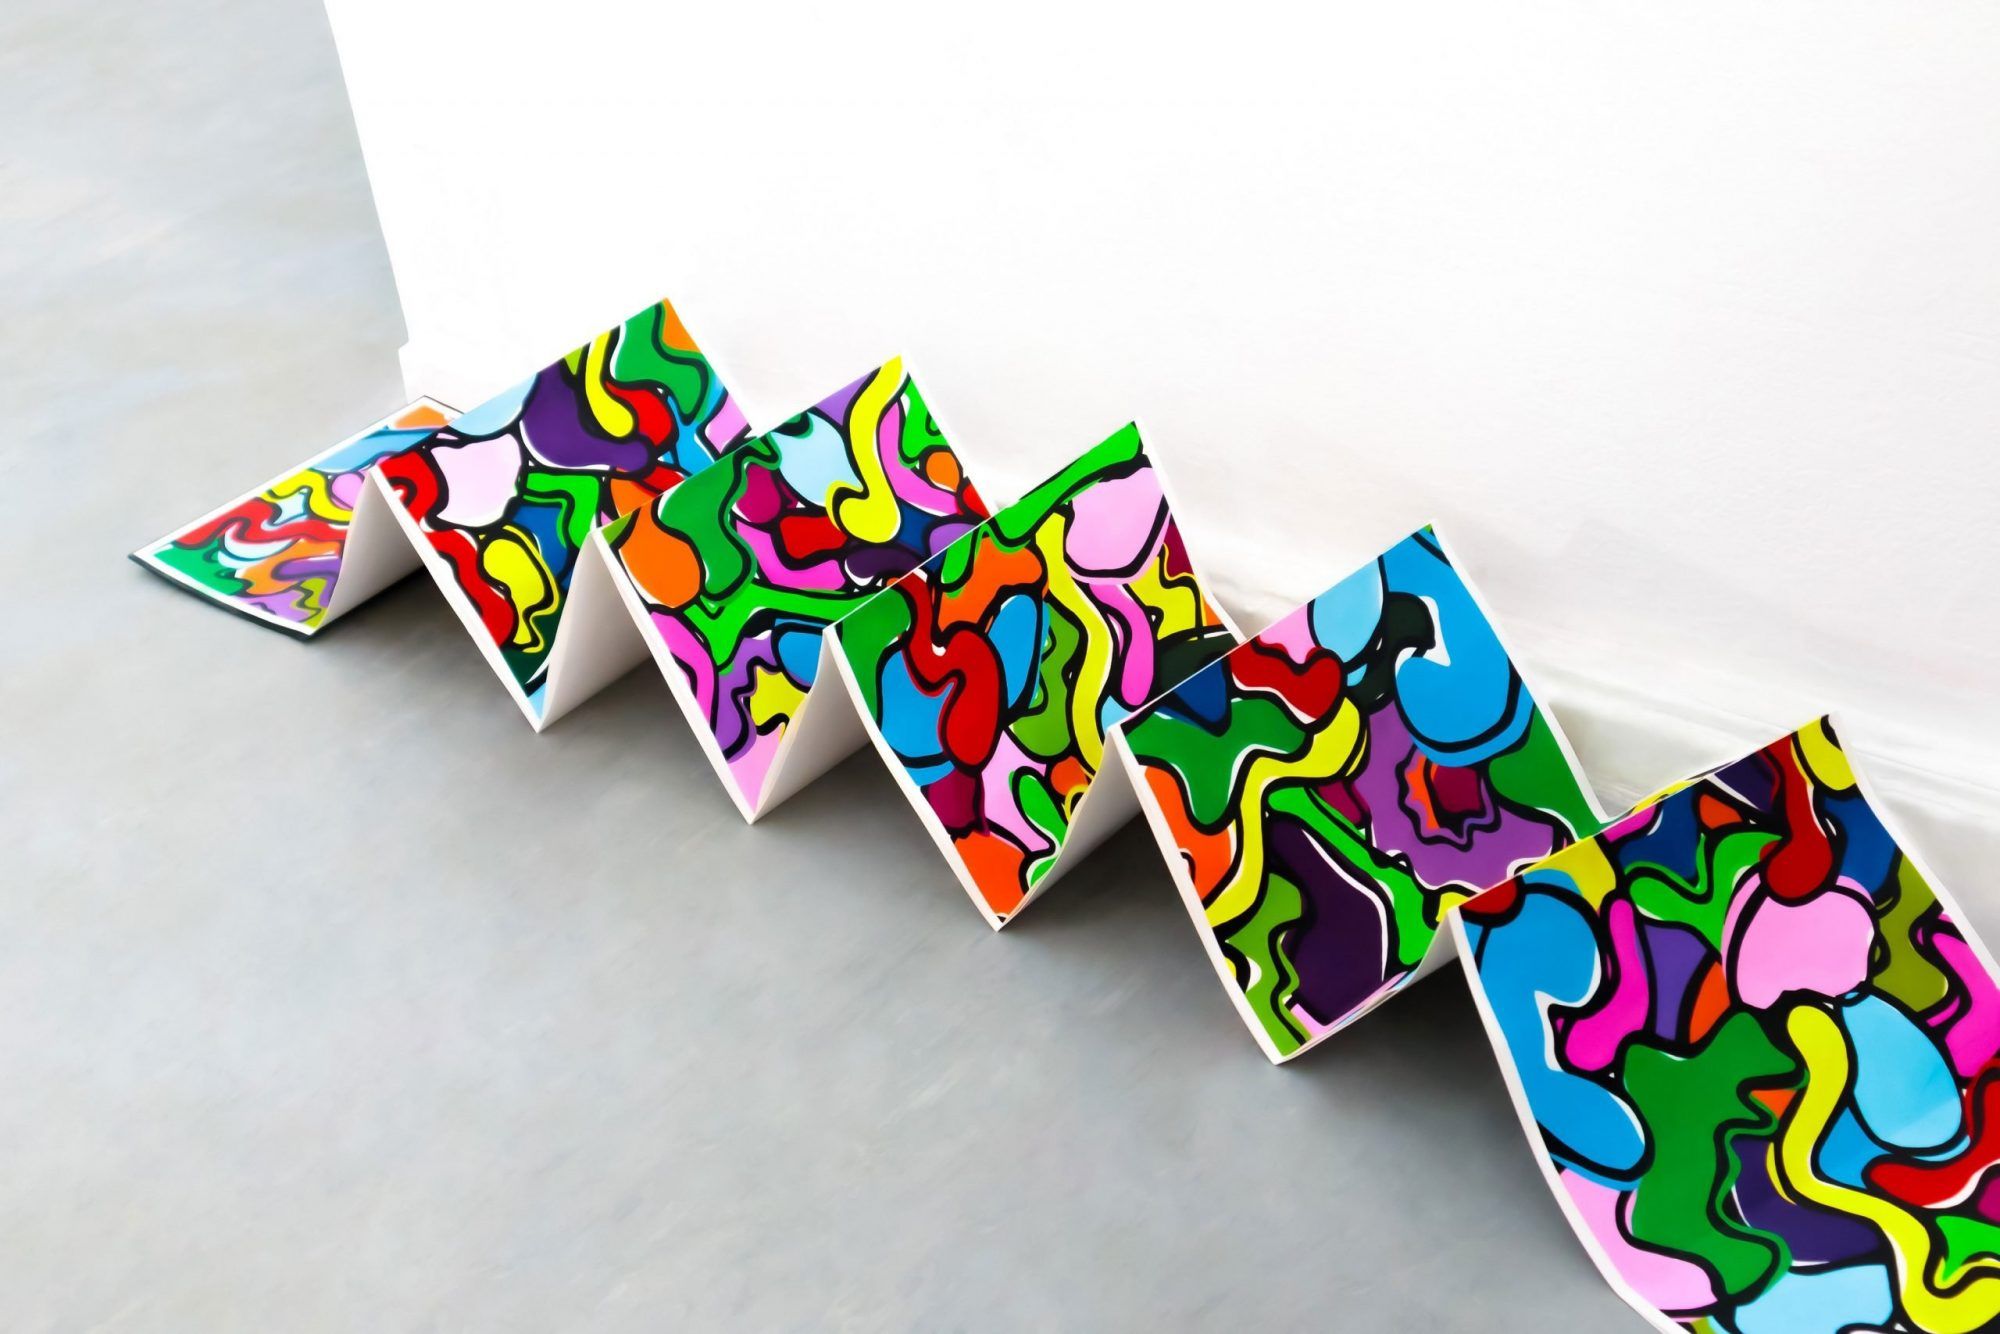 A very long concertinaed page covered in brightly coloured organic shapes and outlined in black is opened out across a grey floor. The end lies flat on the floor with the rest of the page standing on points of the zig-zag. It stands next to a white wall.